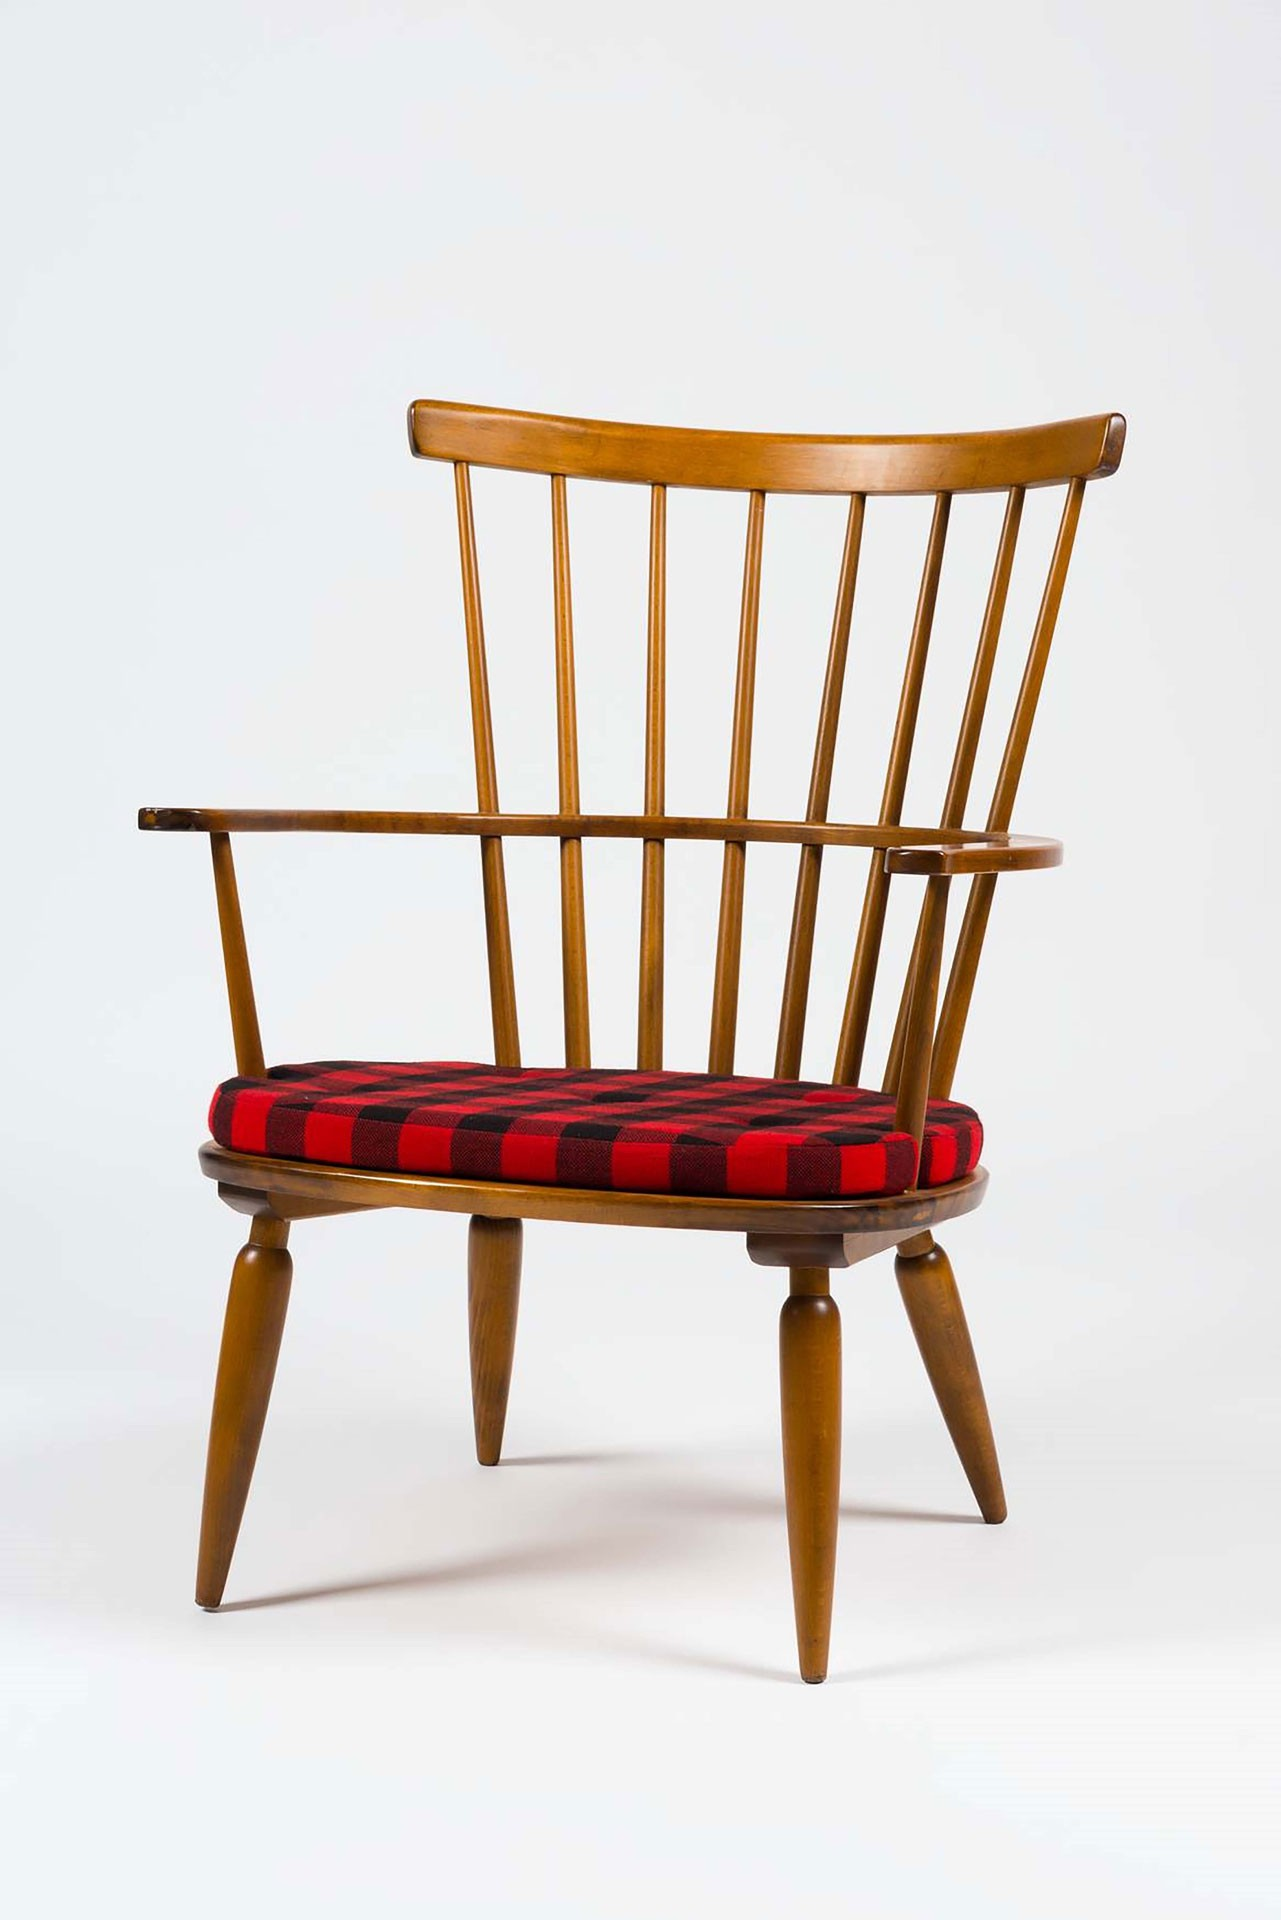 <BODY>Franz Schuster, Armchair, Model No. 1652, Vienna, 1952<br />Beech, solid, partially bent; padding made of foam rubber, textile cover<br />© MAK/Nathan Murrell</BODY>